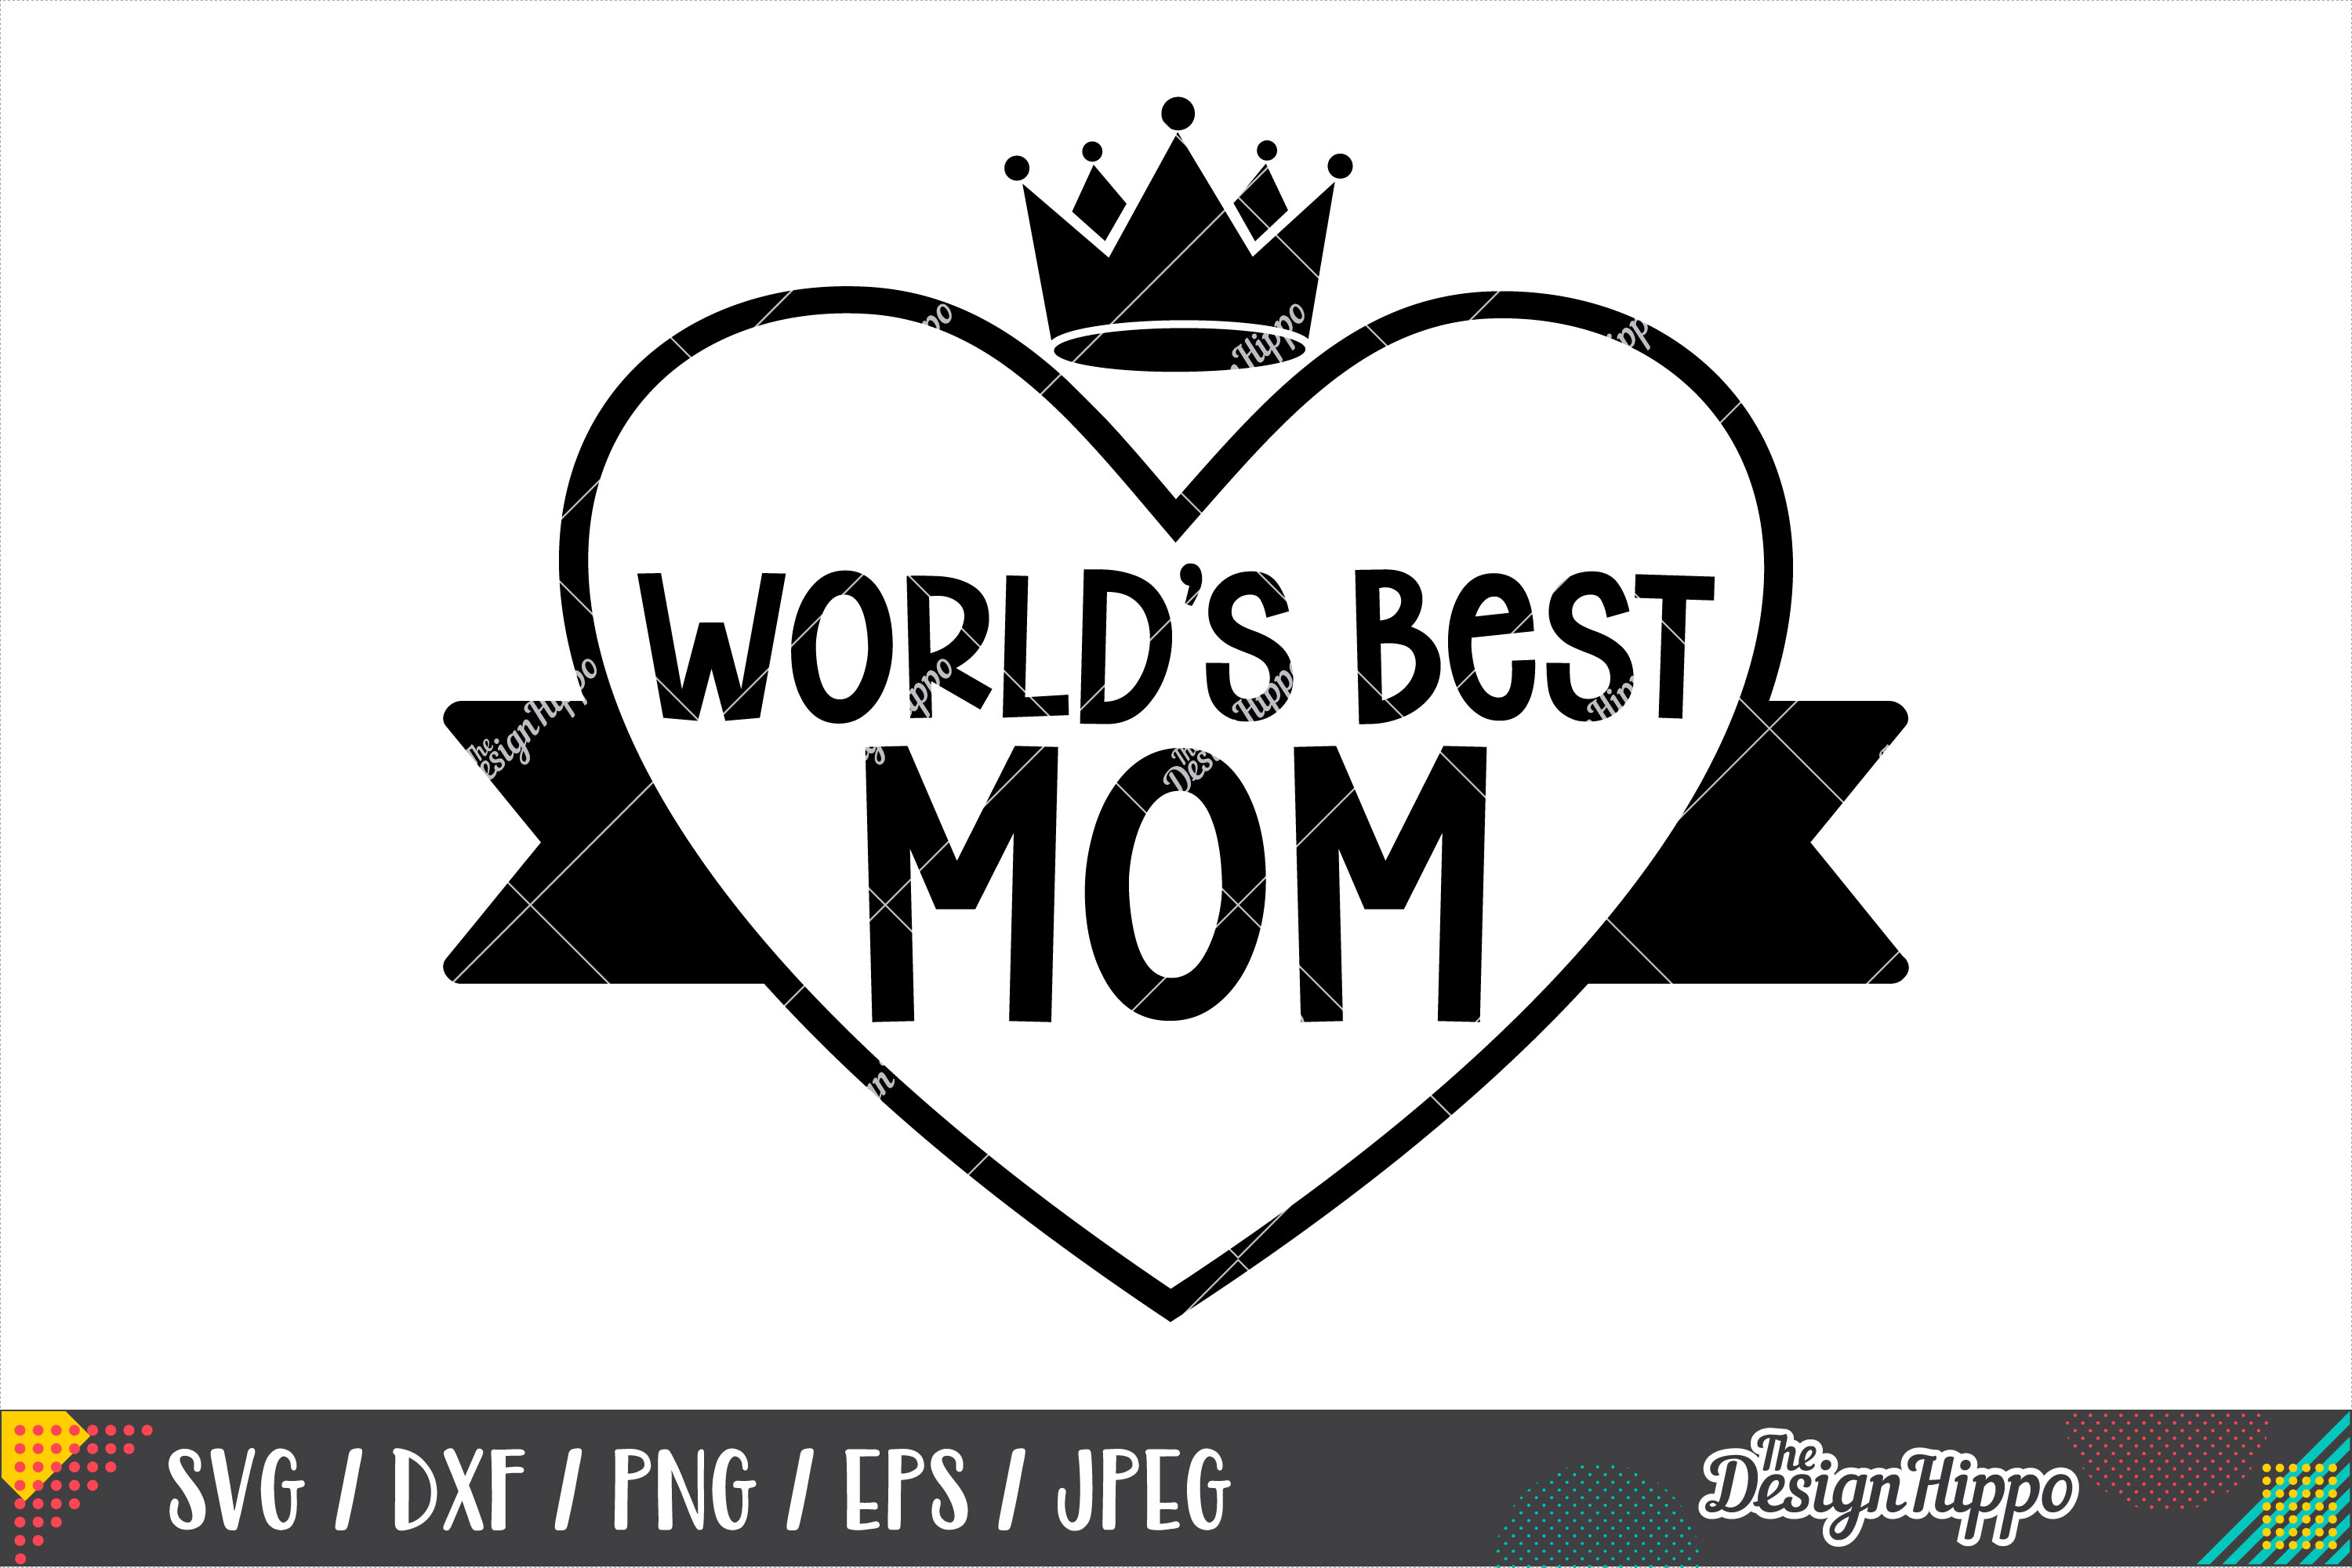 Mom Quotes SVG Bundle, 20 Designs, SVG PNG DXF Cutting Files example image 20